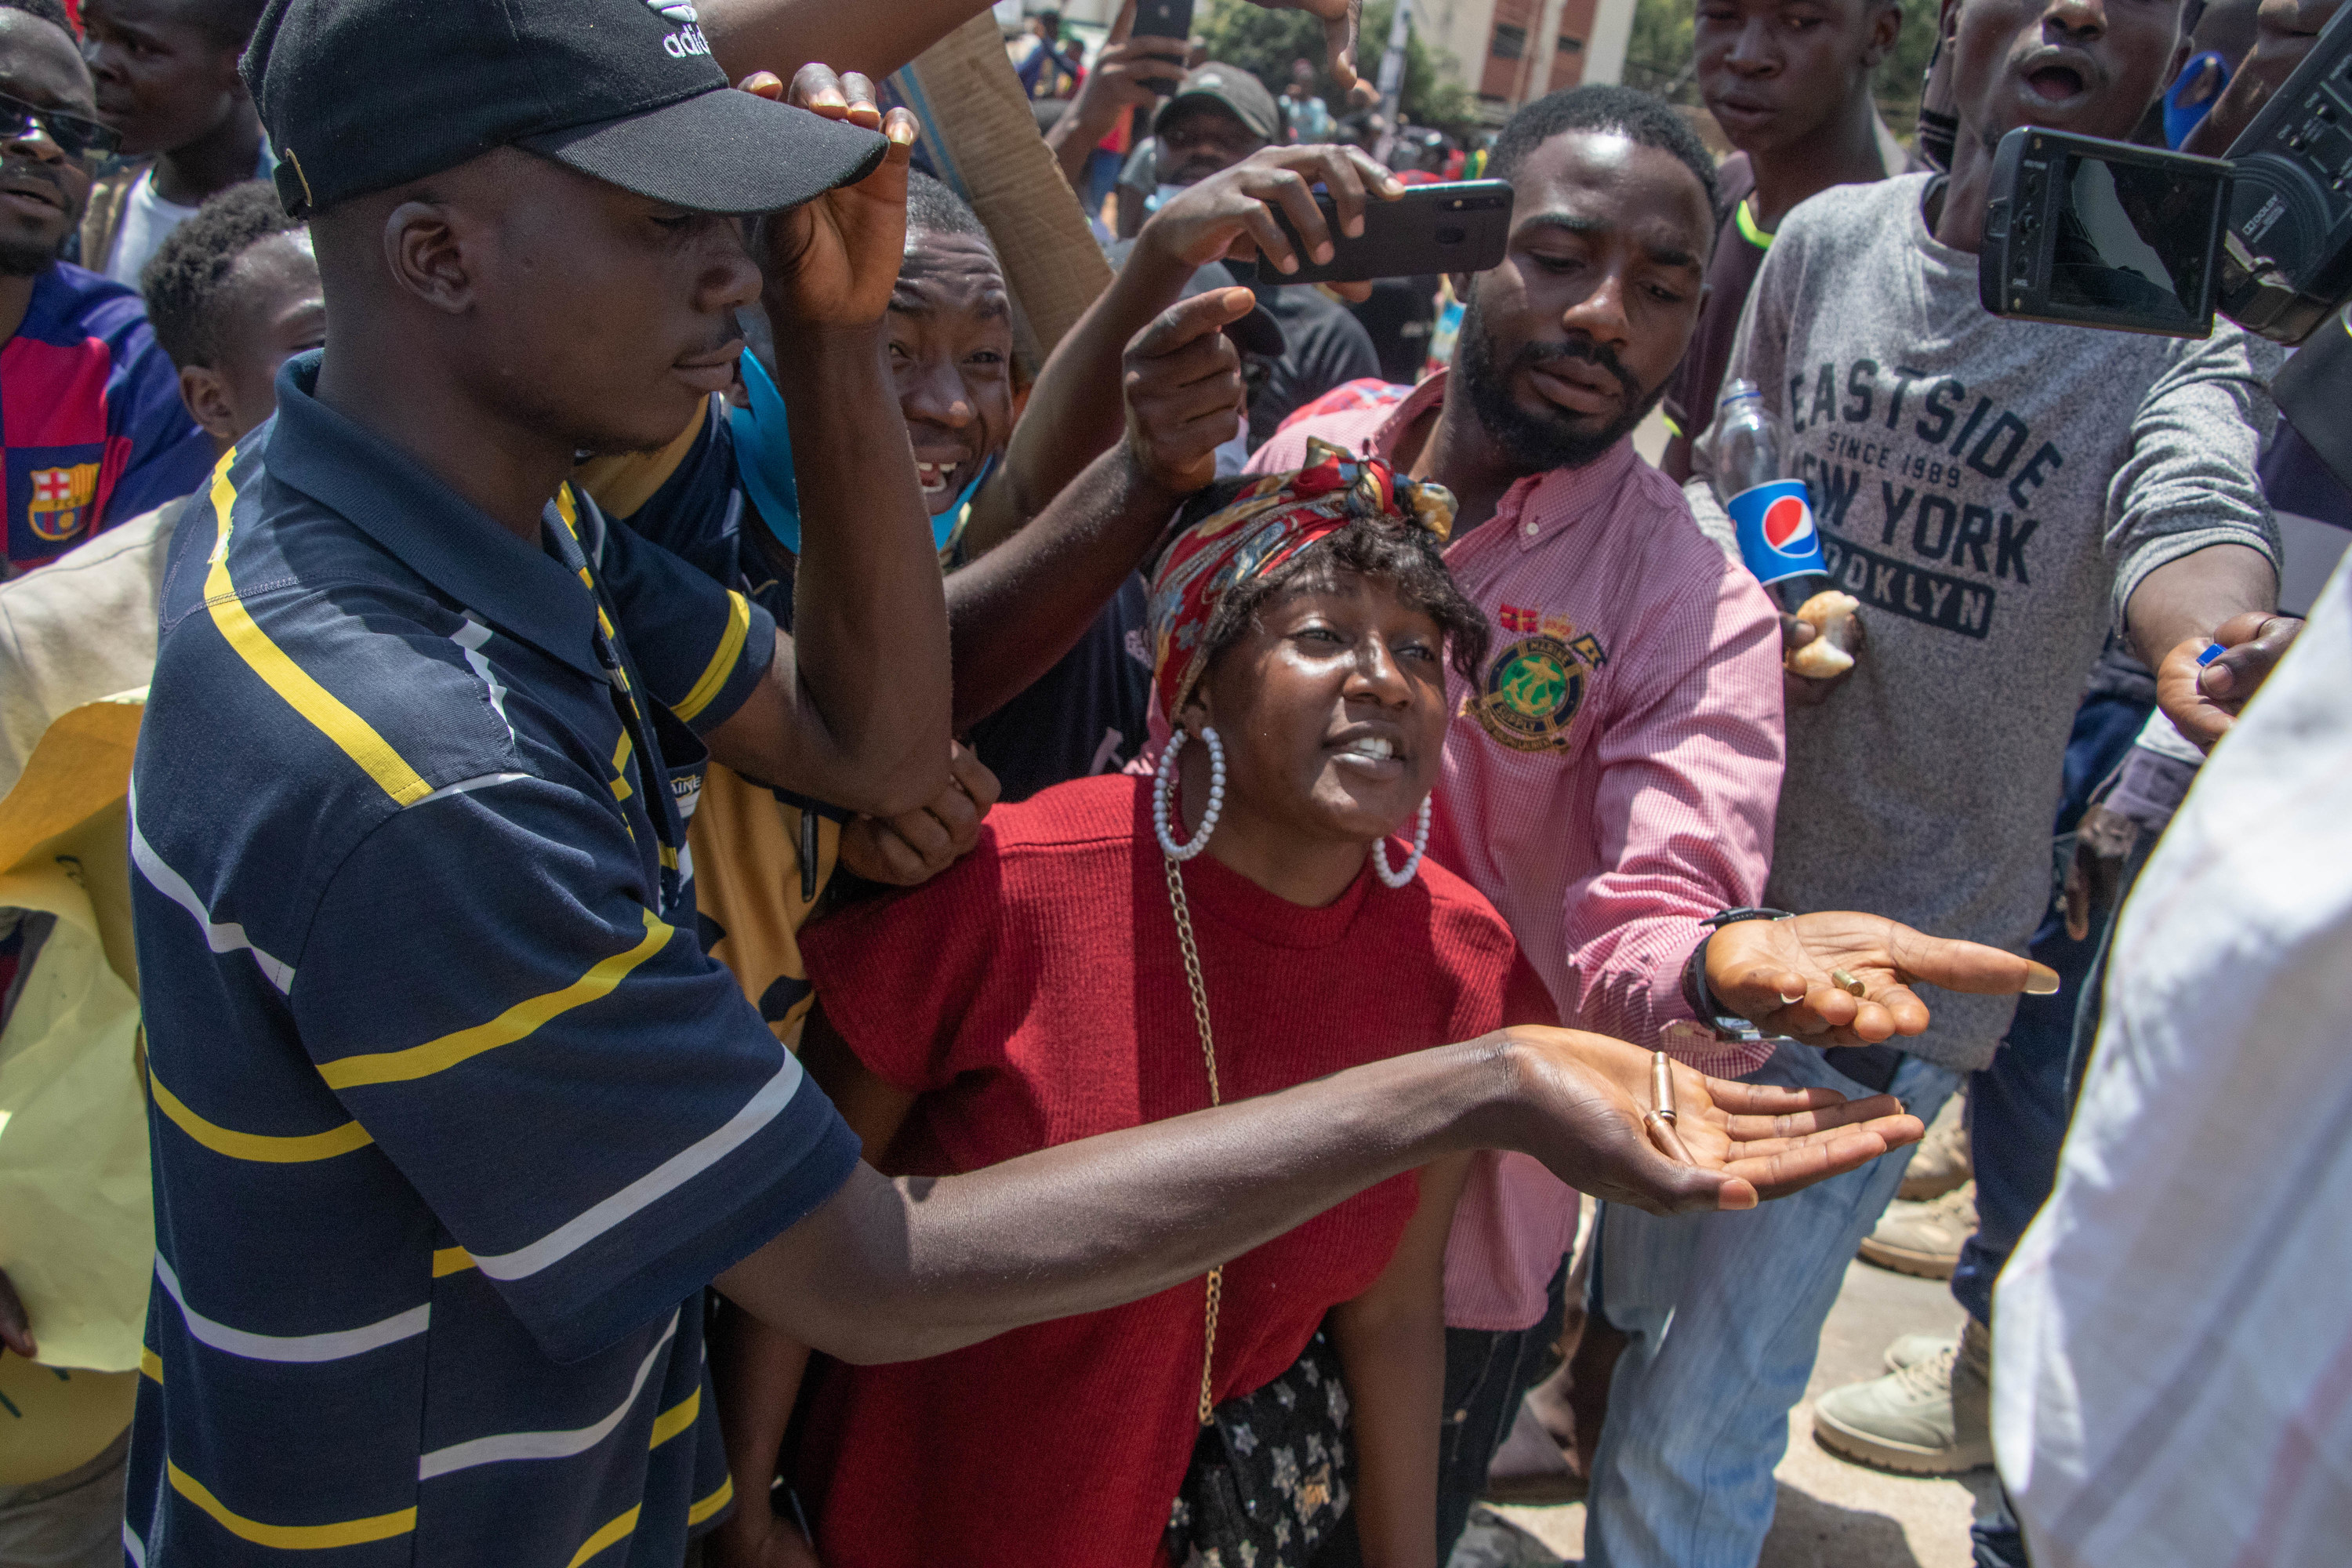 People hold bullets in outstretched palms while other people film on cellphones during a protest in Jos